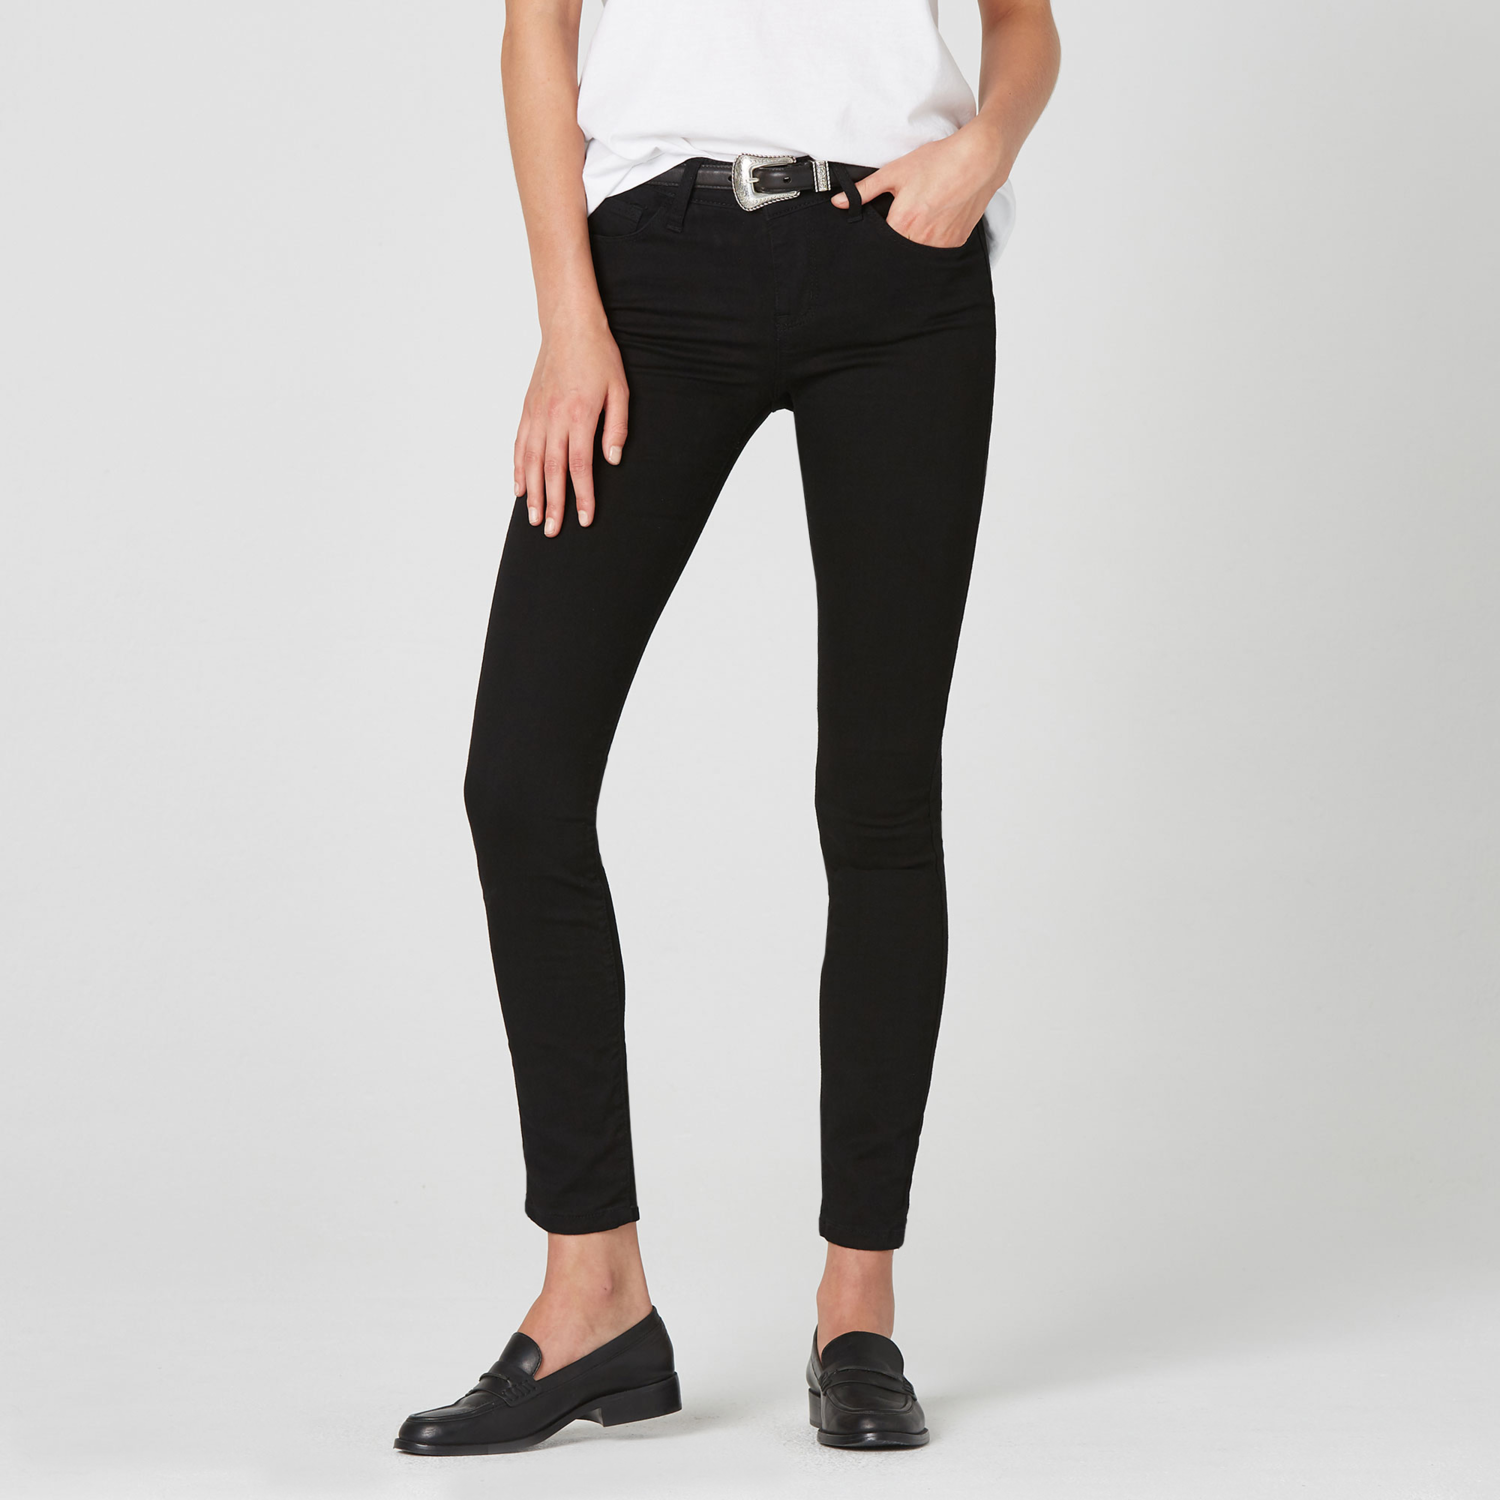 6f8936d935c Womens Mid Rise Skinny Jeans In Black Powerstretch $85 | DSTLD